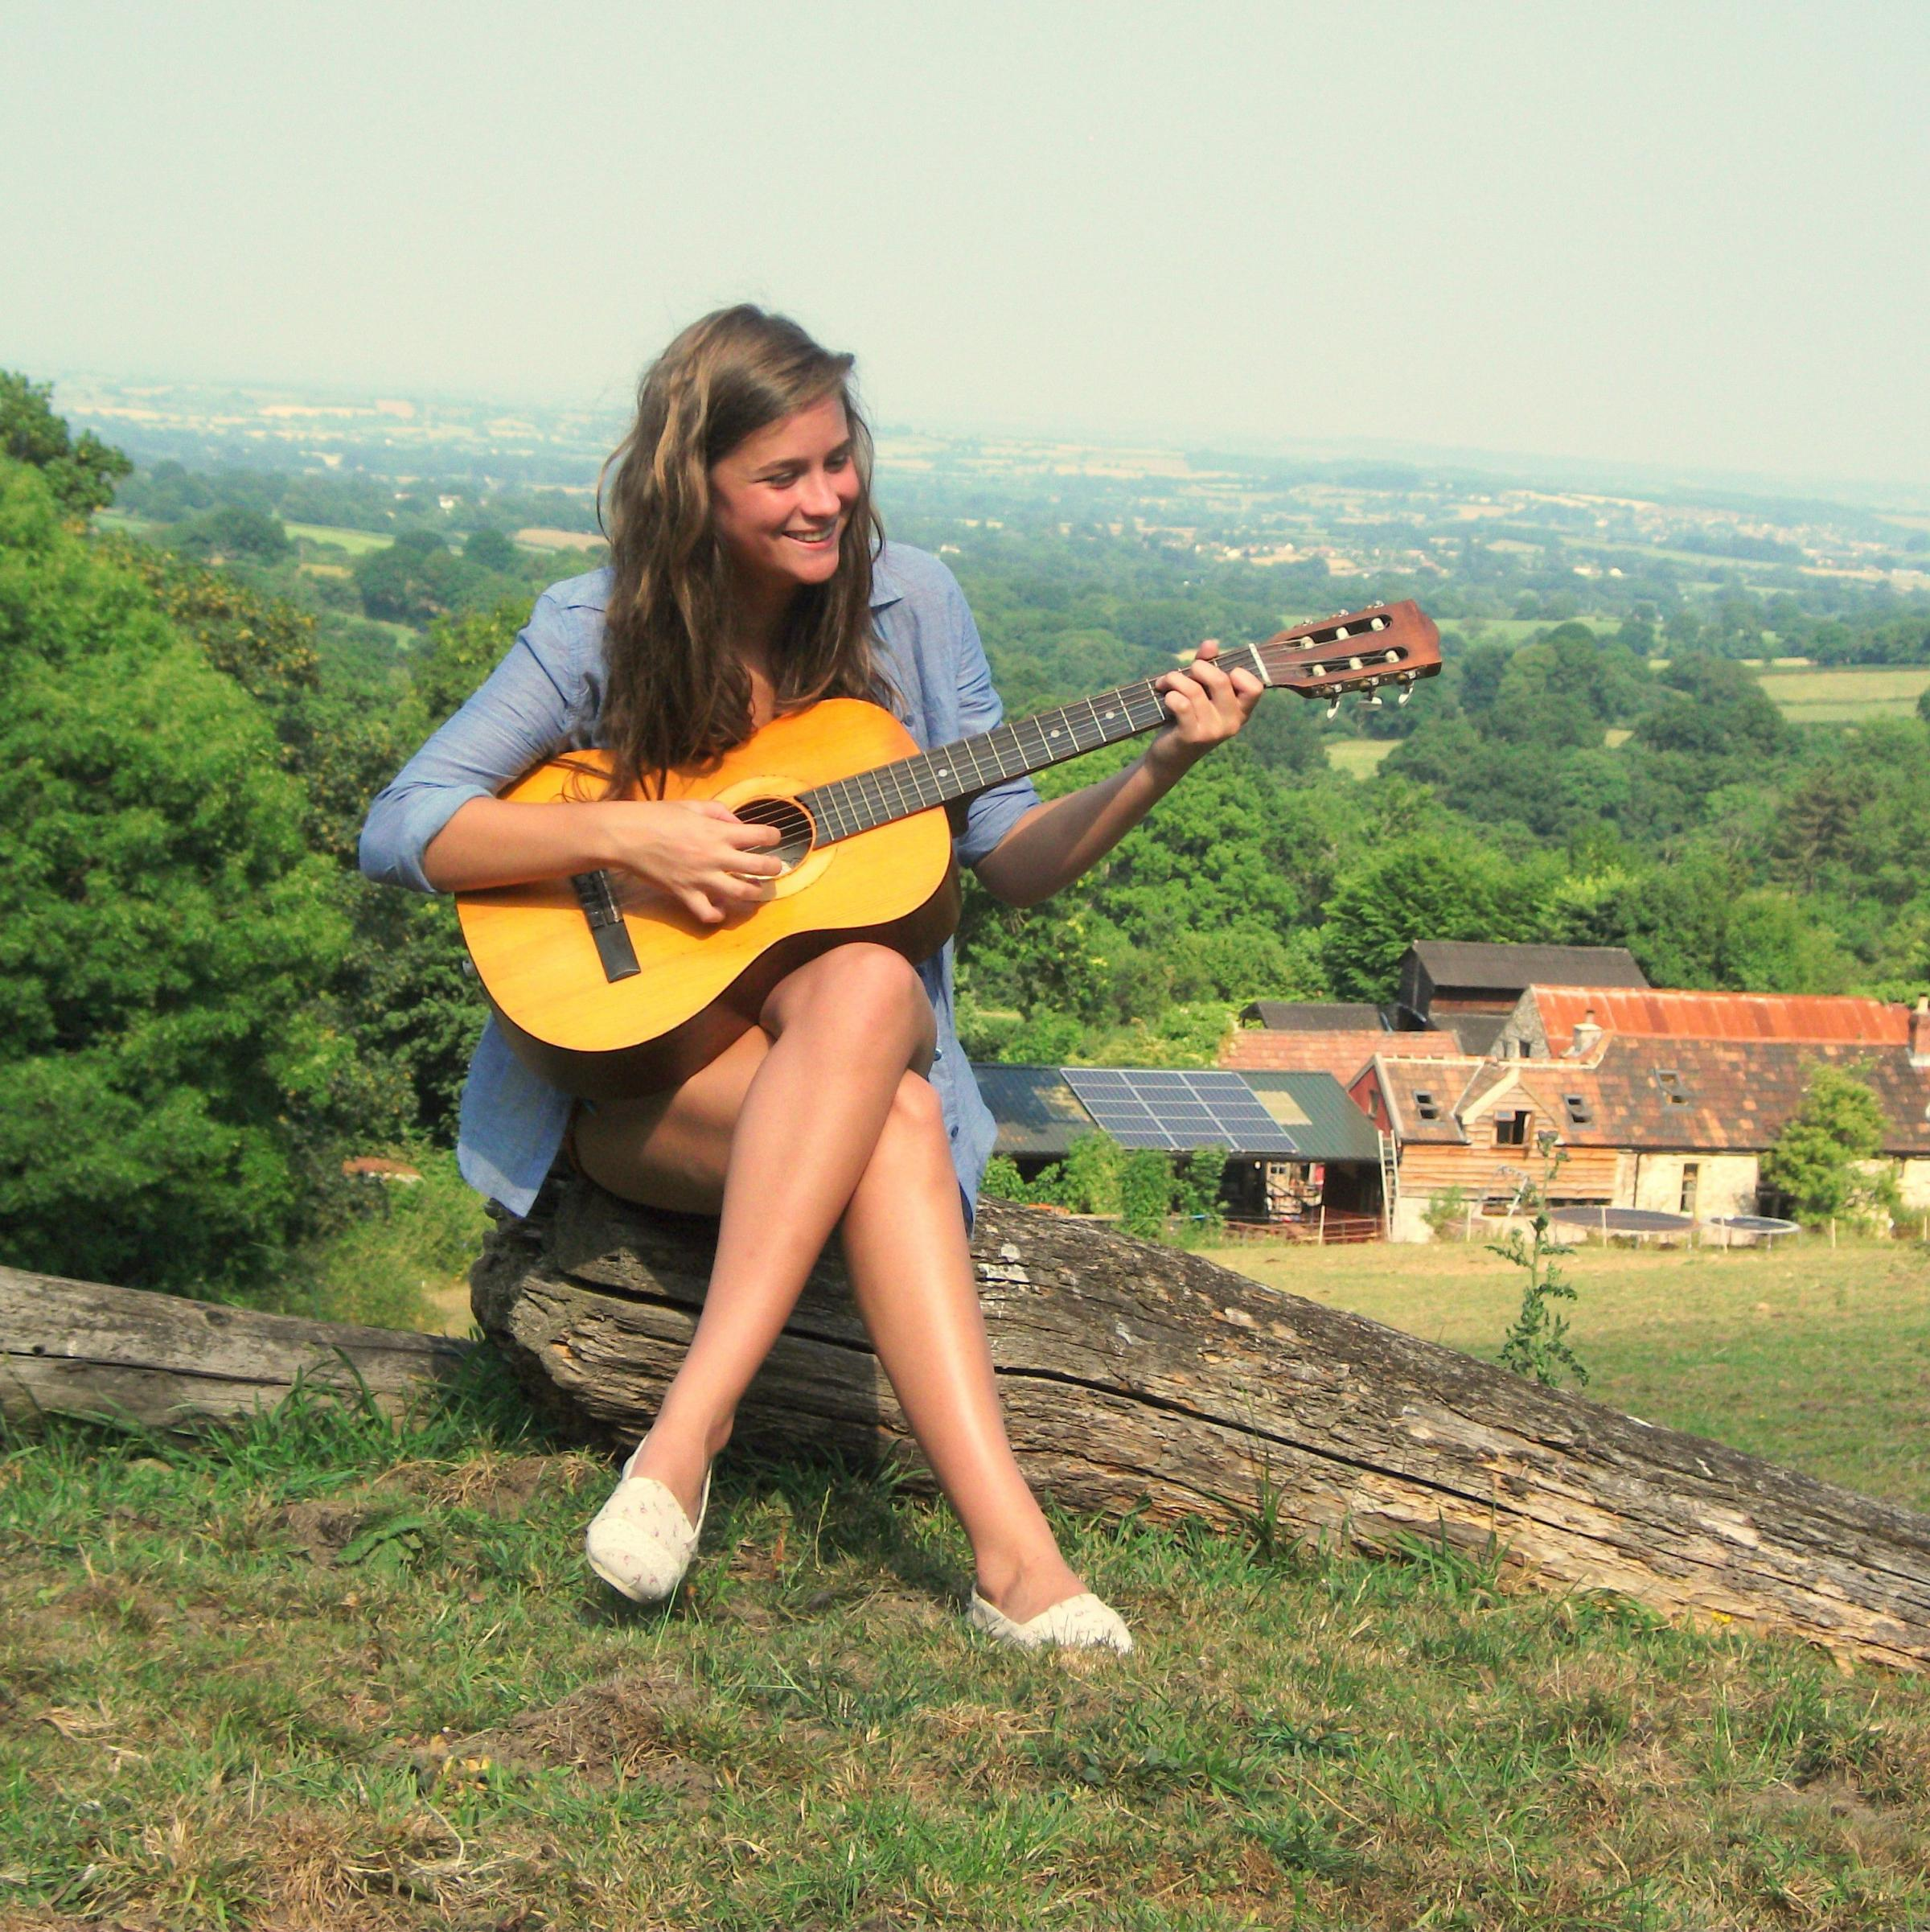 Jemima Farey will be putting folk music centre stage this month in Ilminster